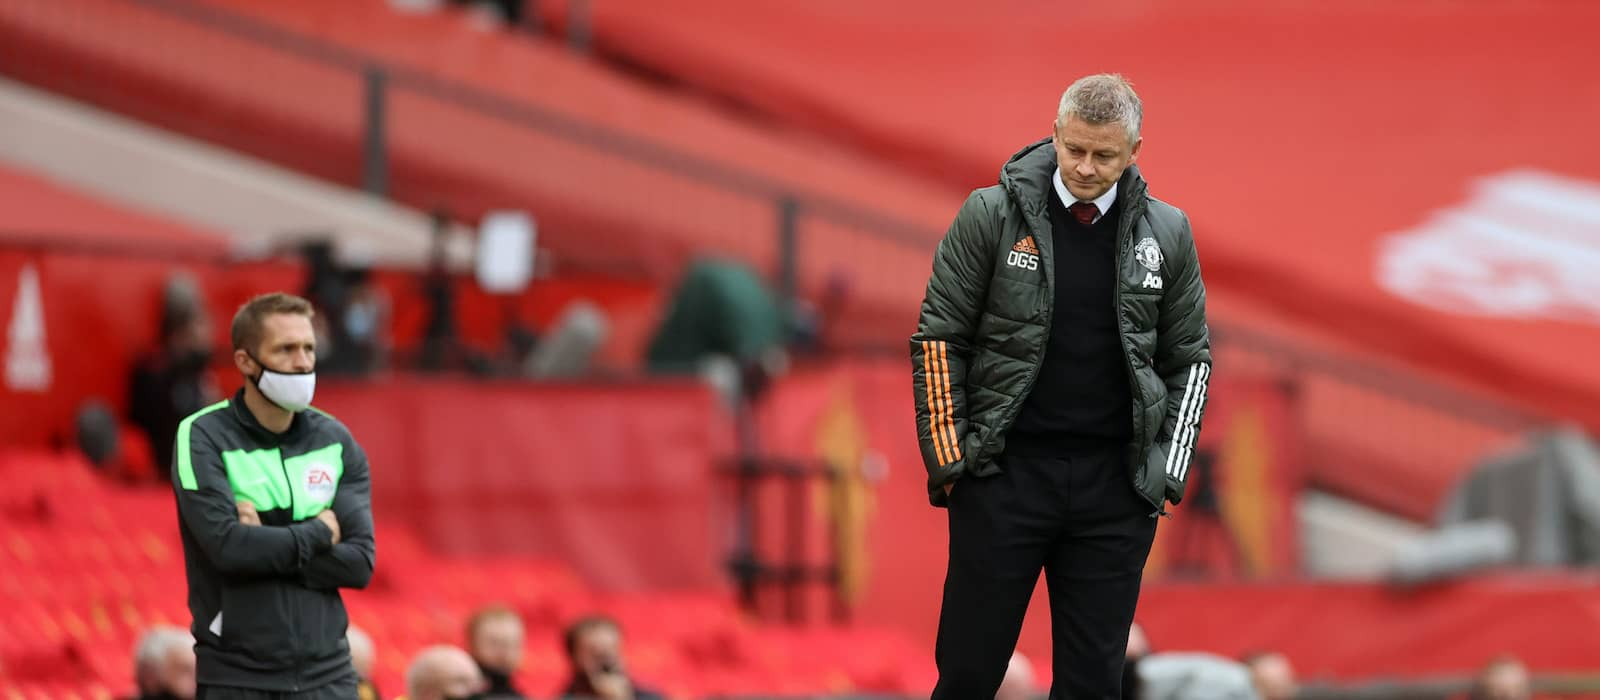 Ole Gunnar Solskjaer is not capable of managing Man United, says top journalist